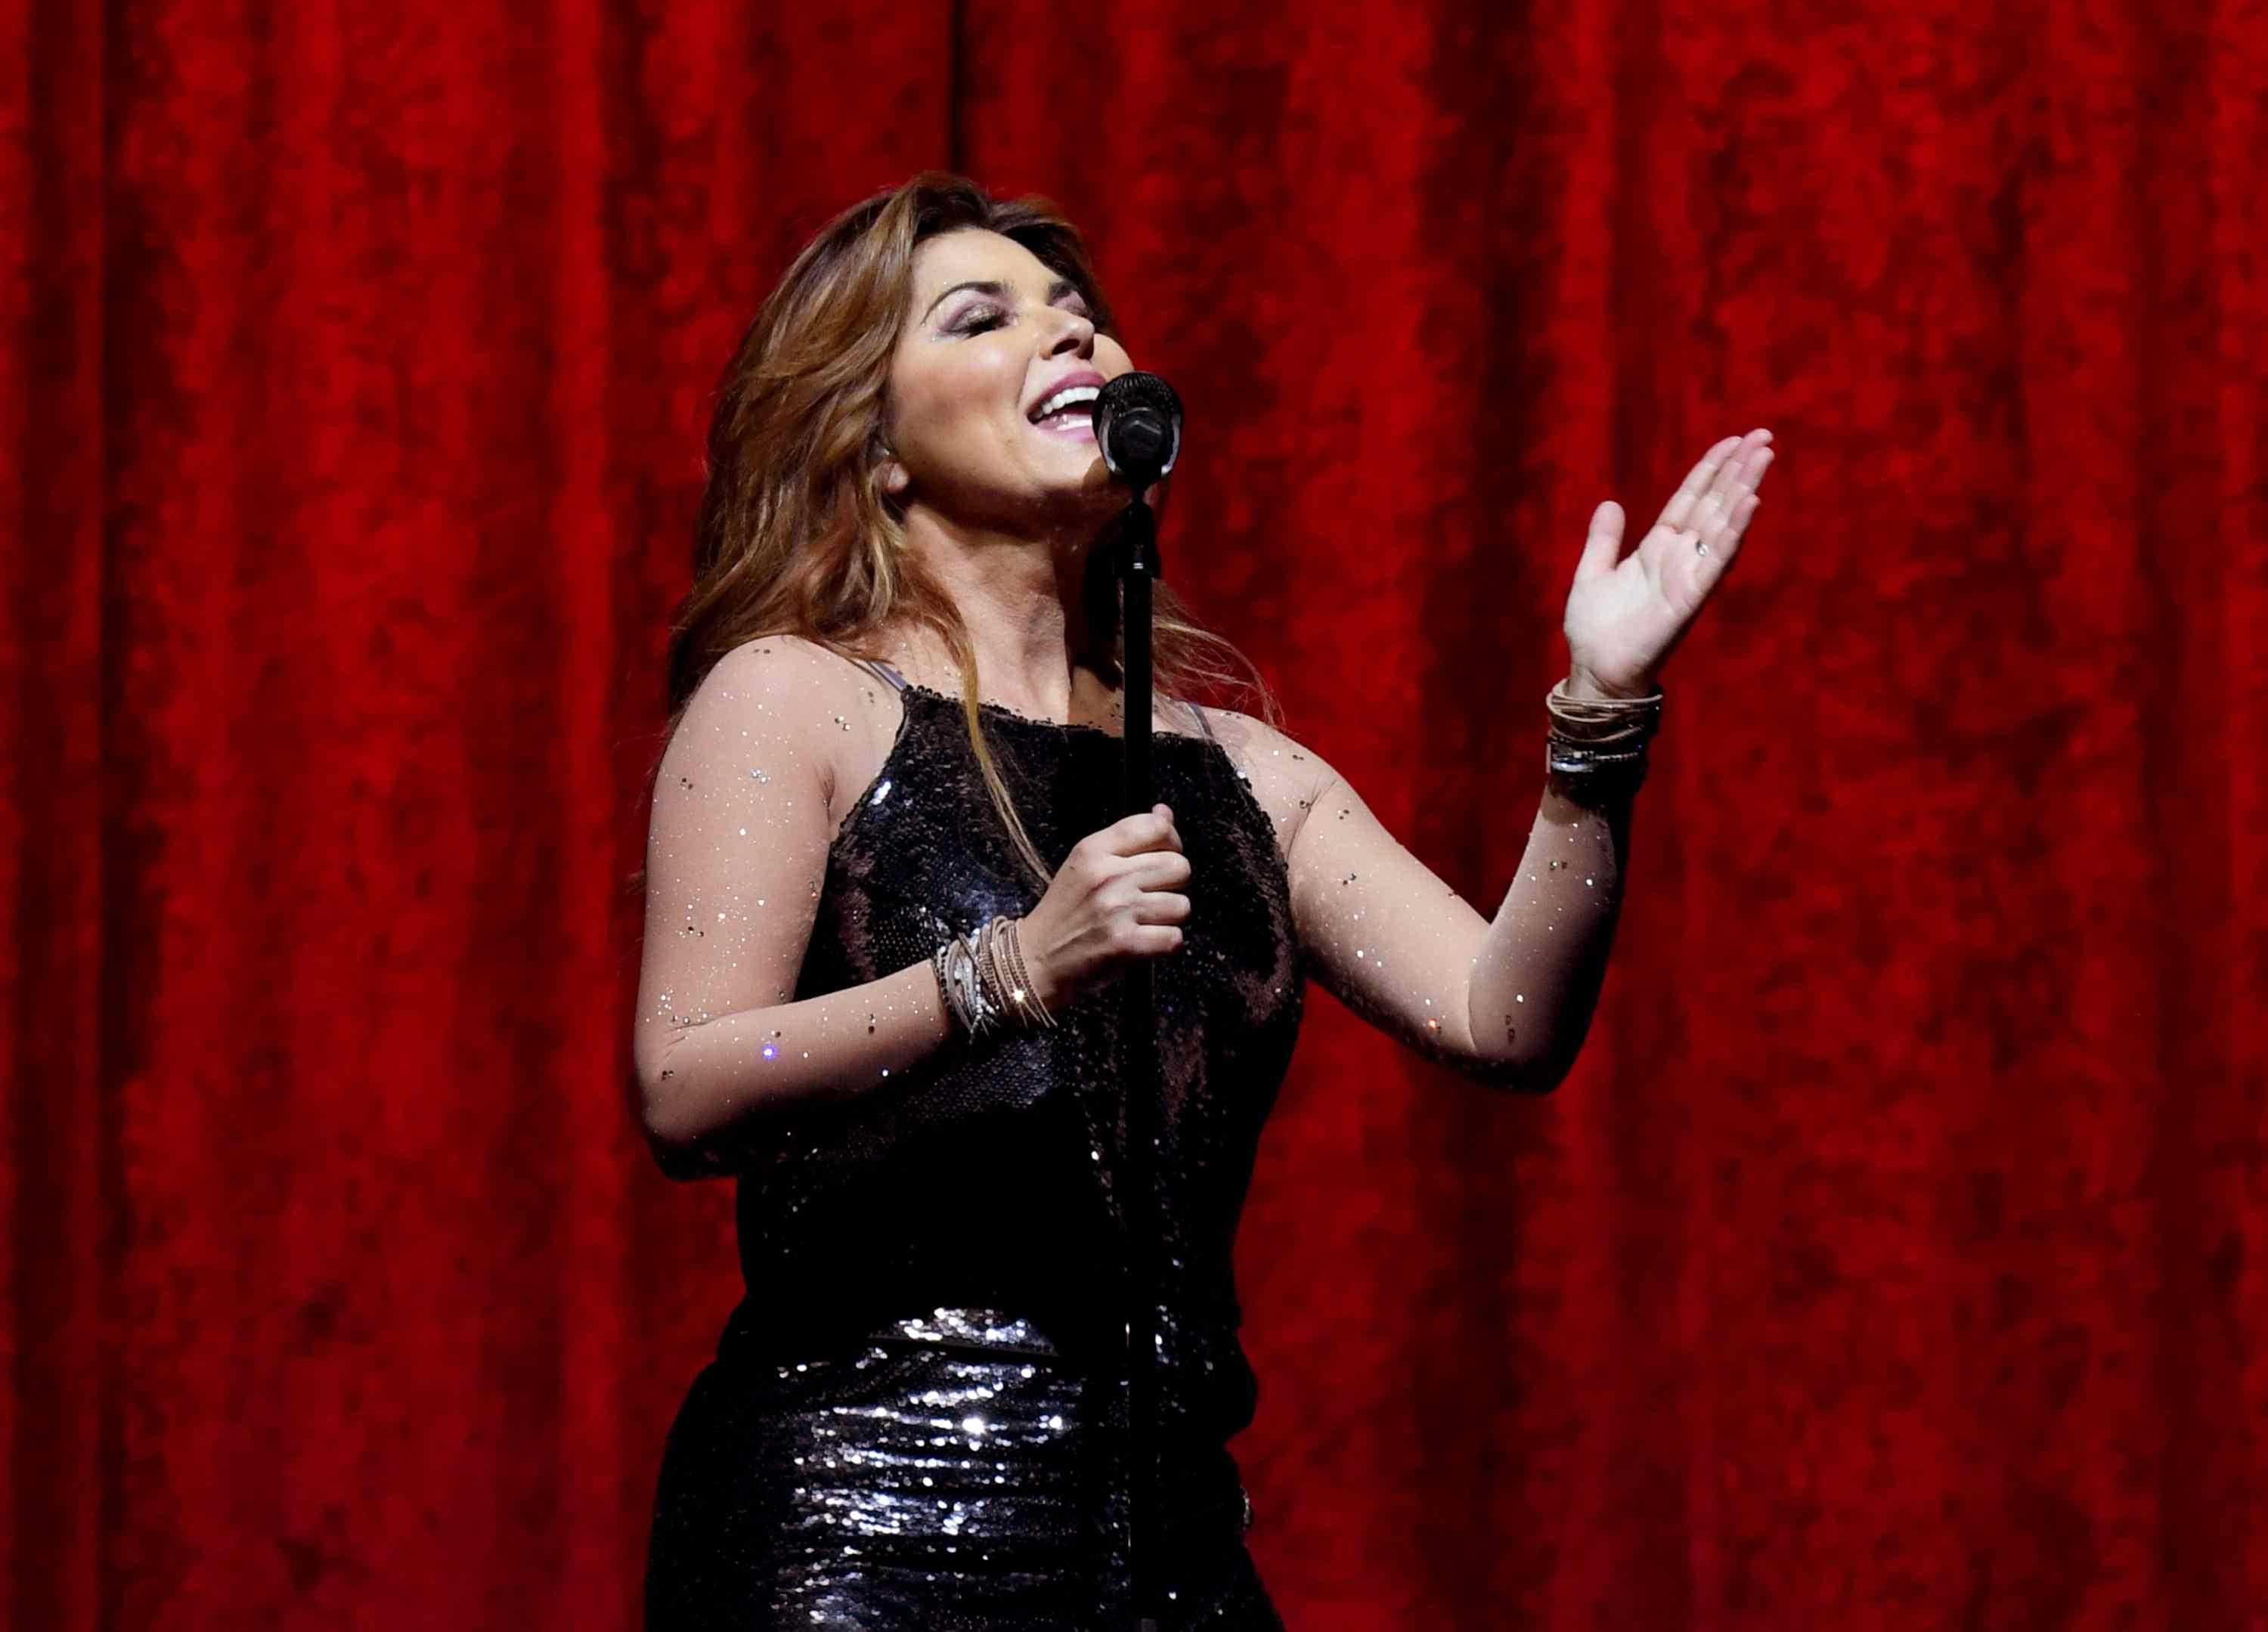 Shania Twain performing in front of a red curtain on stage.